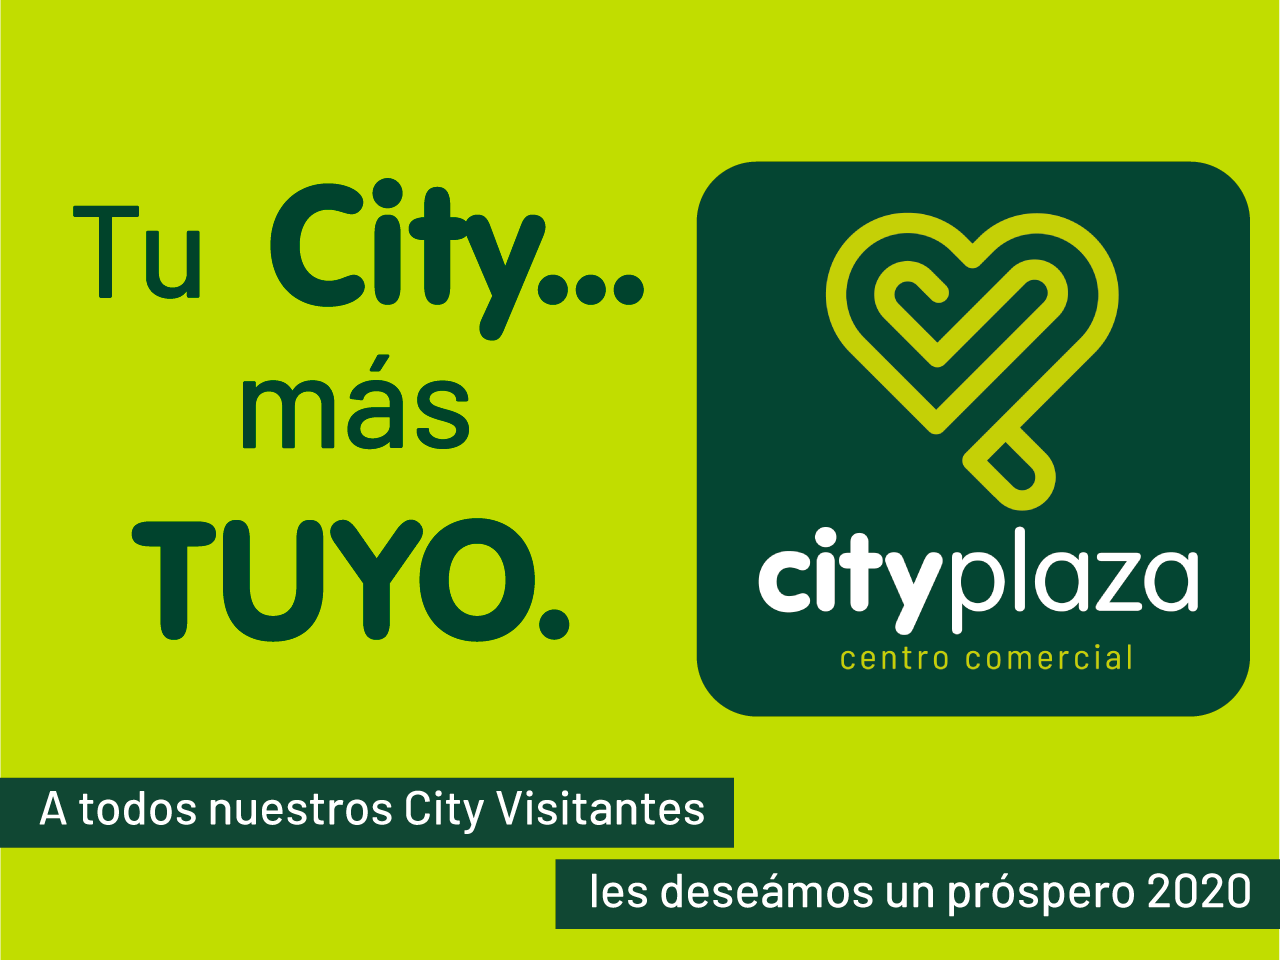 City Plaza Mobile